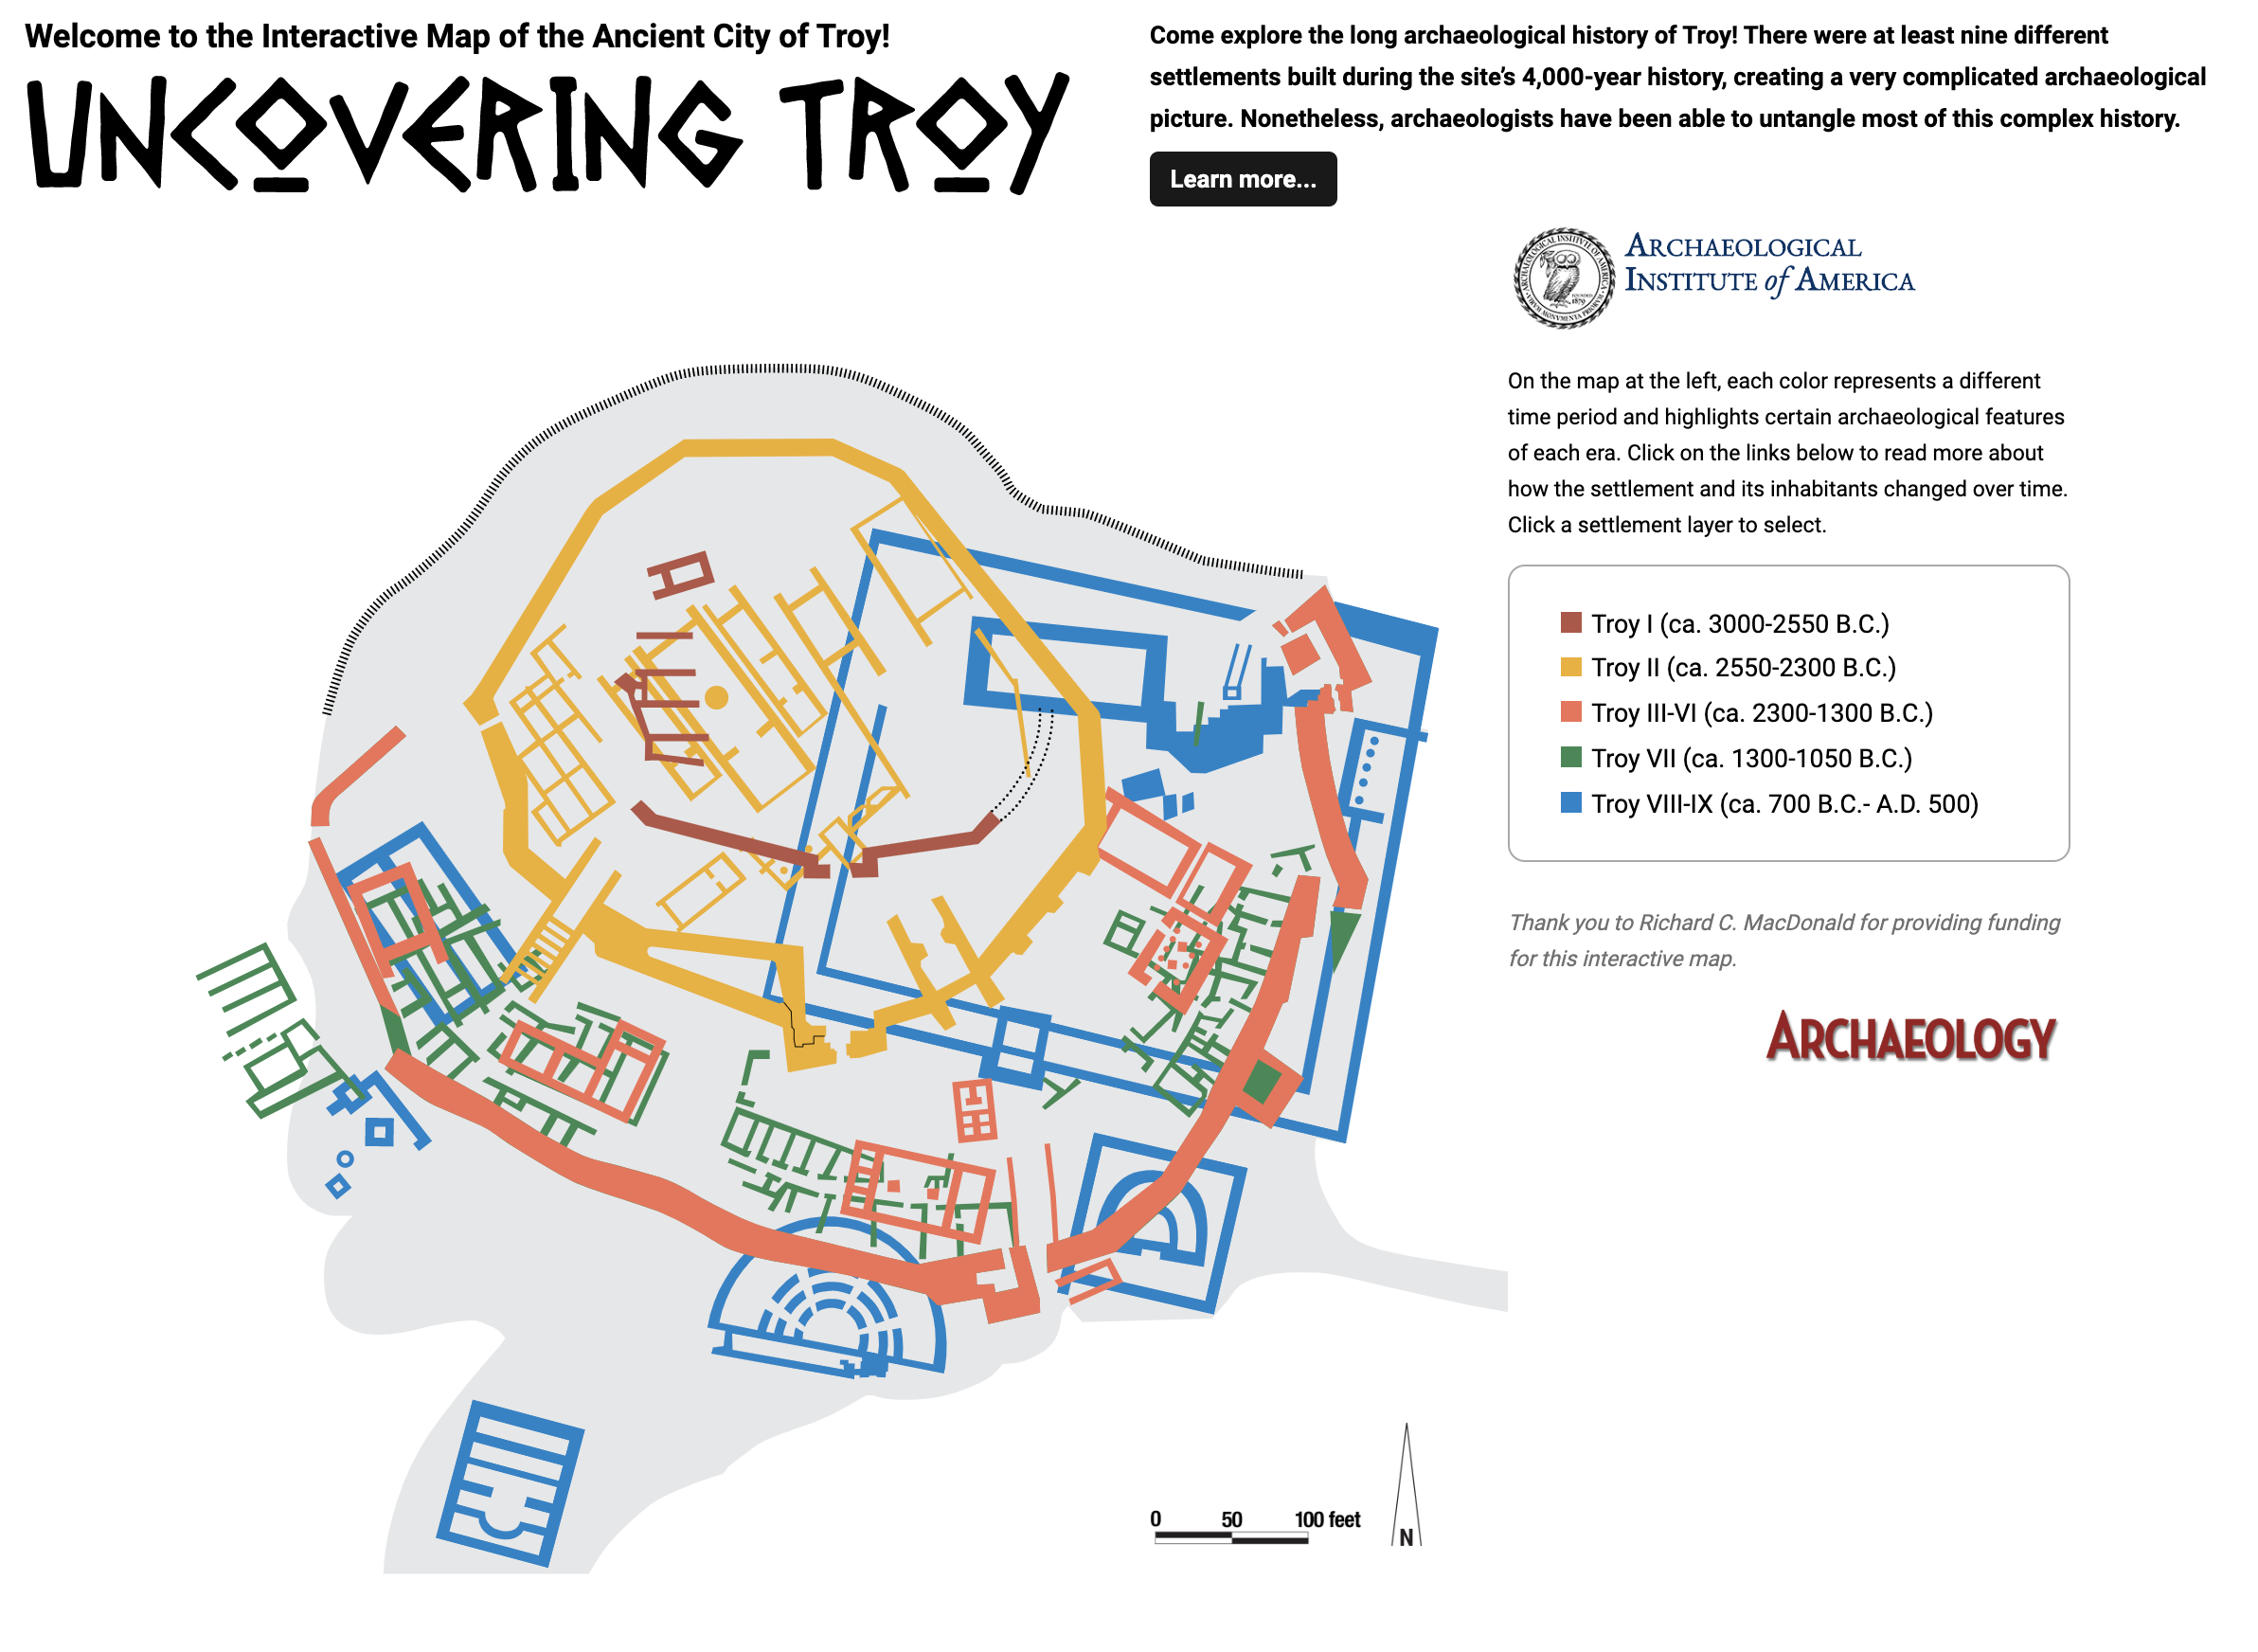 [Tools] An Interactive Map of Troy